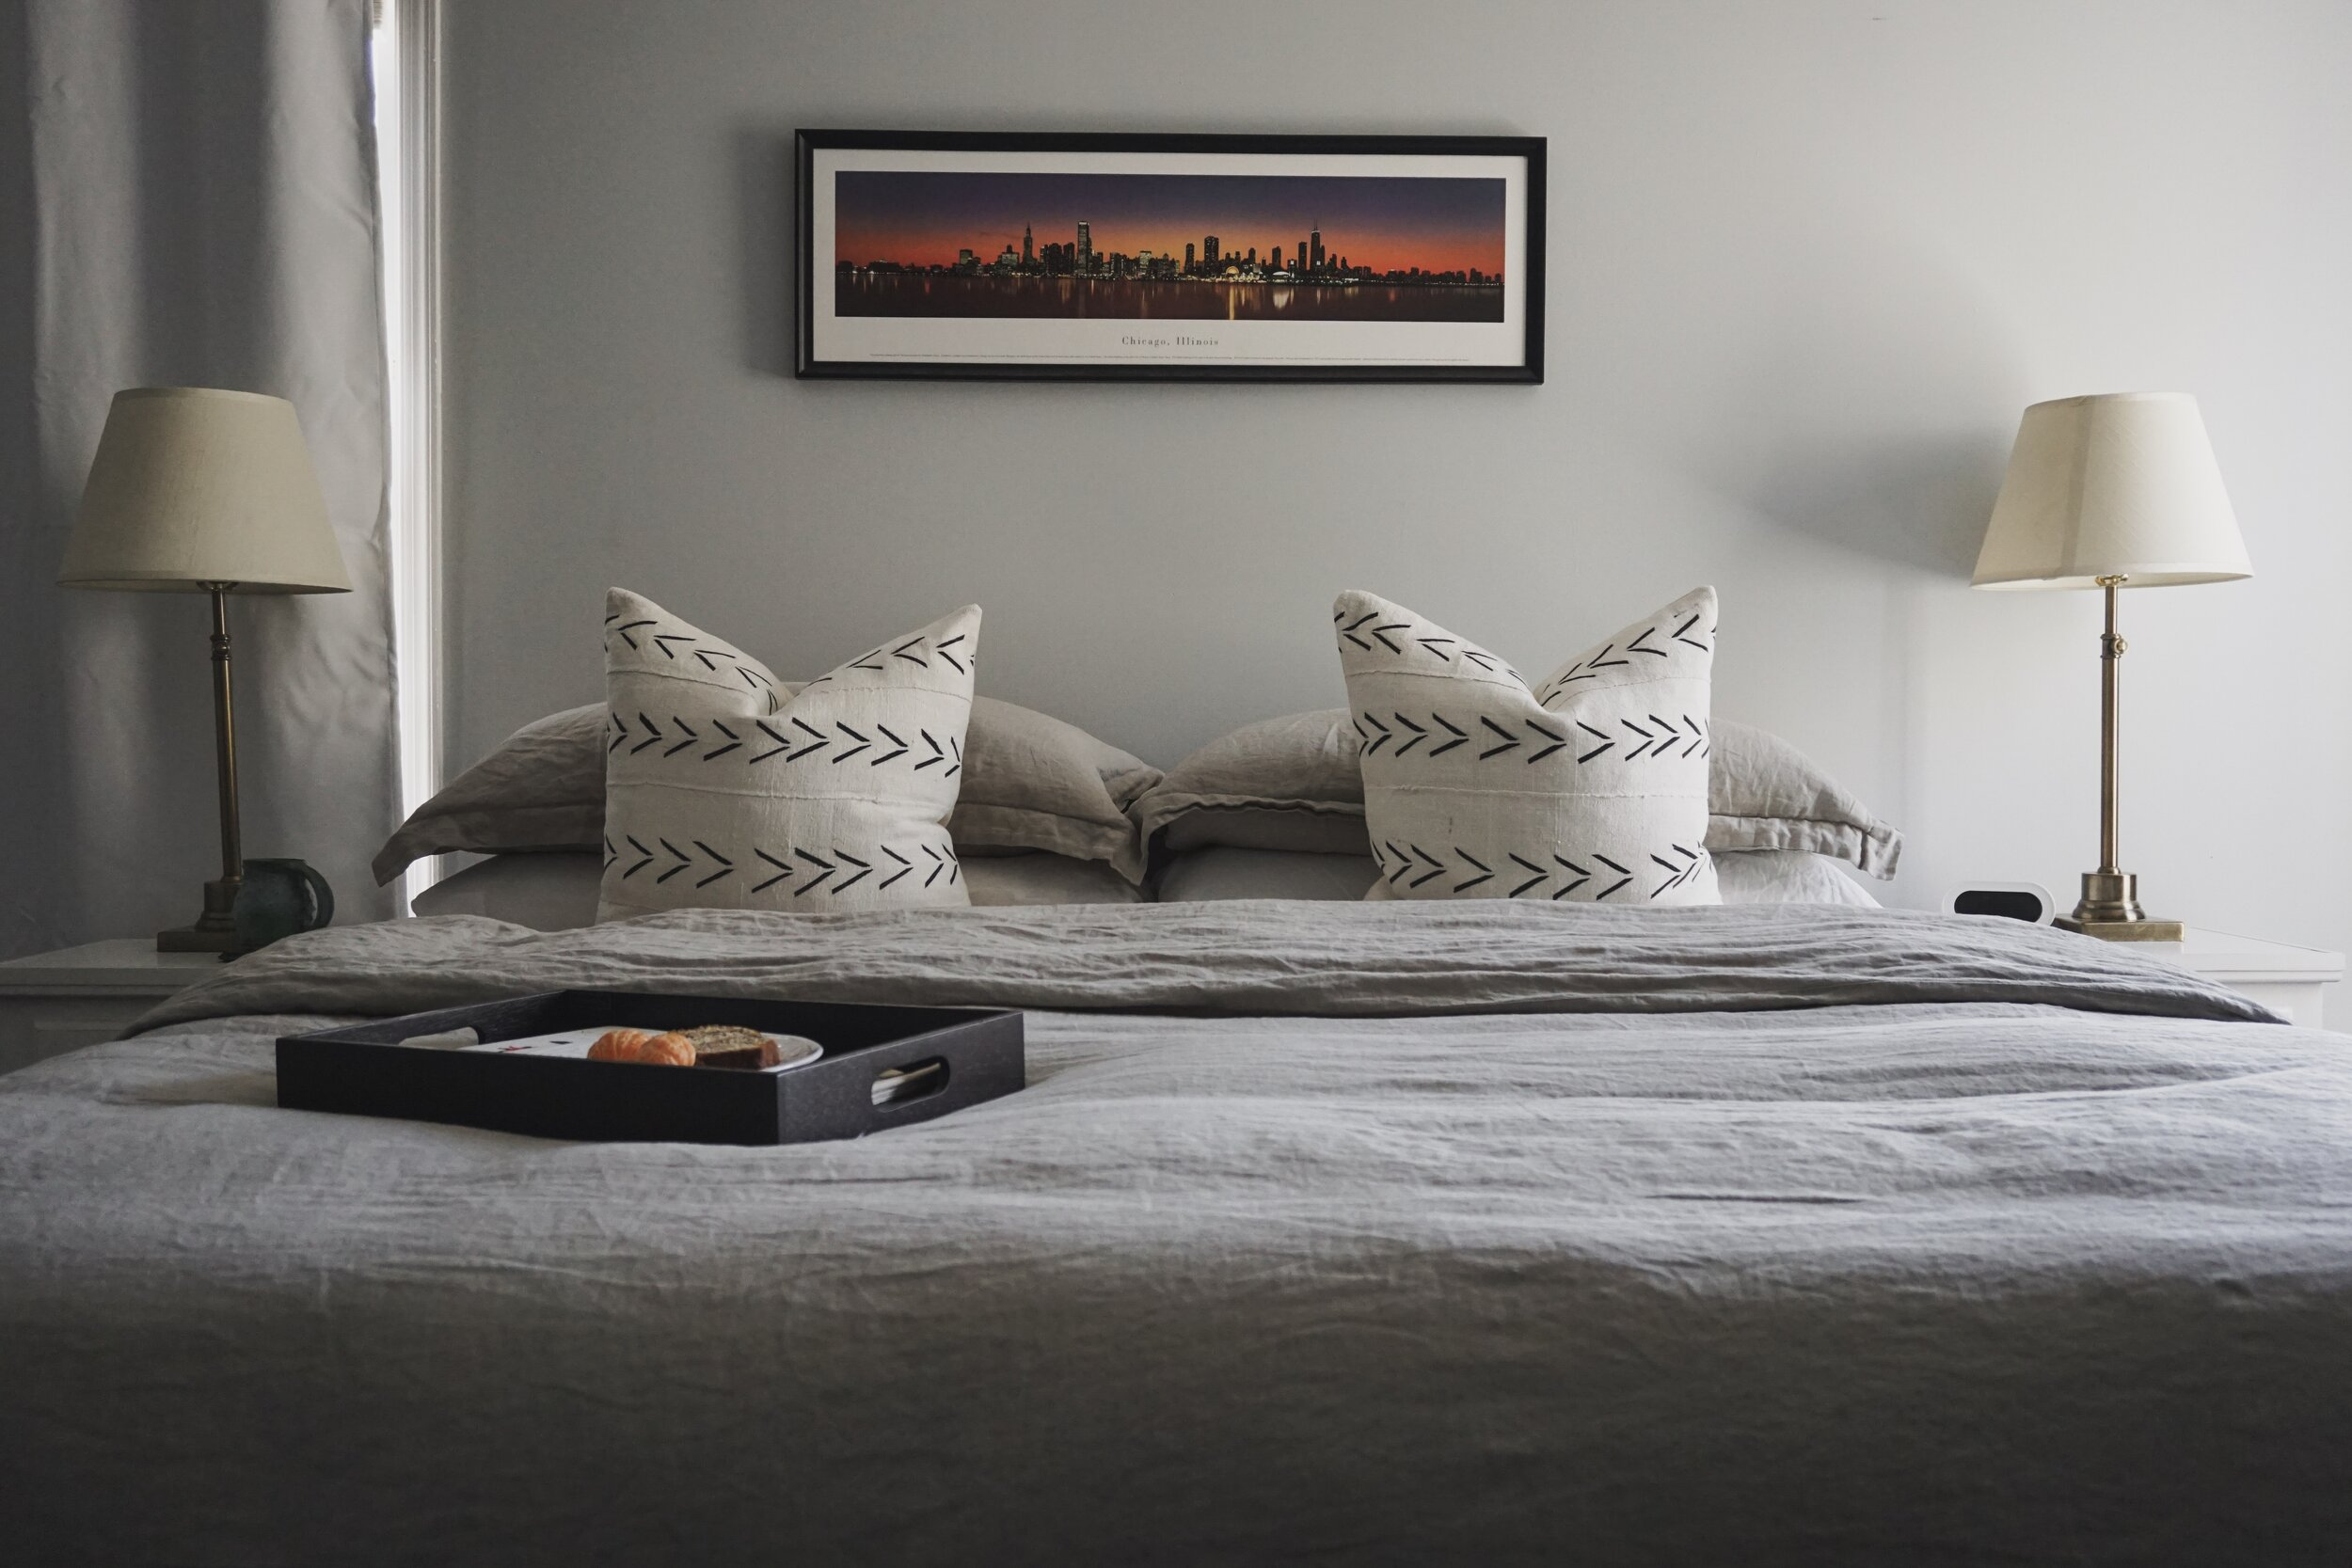 When we upgraded to a king bed we chose a linen duvet cover with bamboo sheets and African mud-cloth throw pillows. The lamps and nightstands were handed down from my grandmother. We haven't gotten an actual bed yet because the four-poster I want won't fit underneath the ceiling fan. #renterproblems